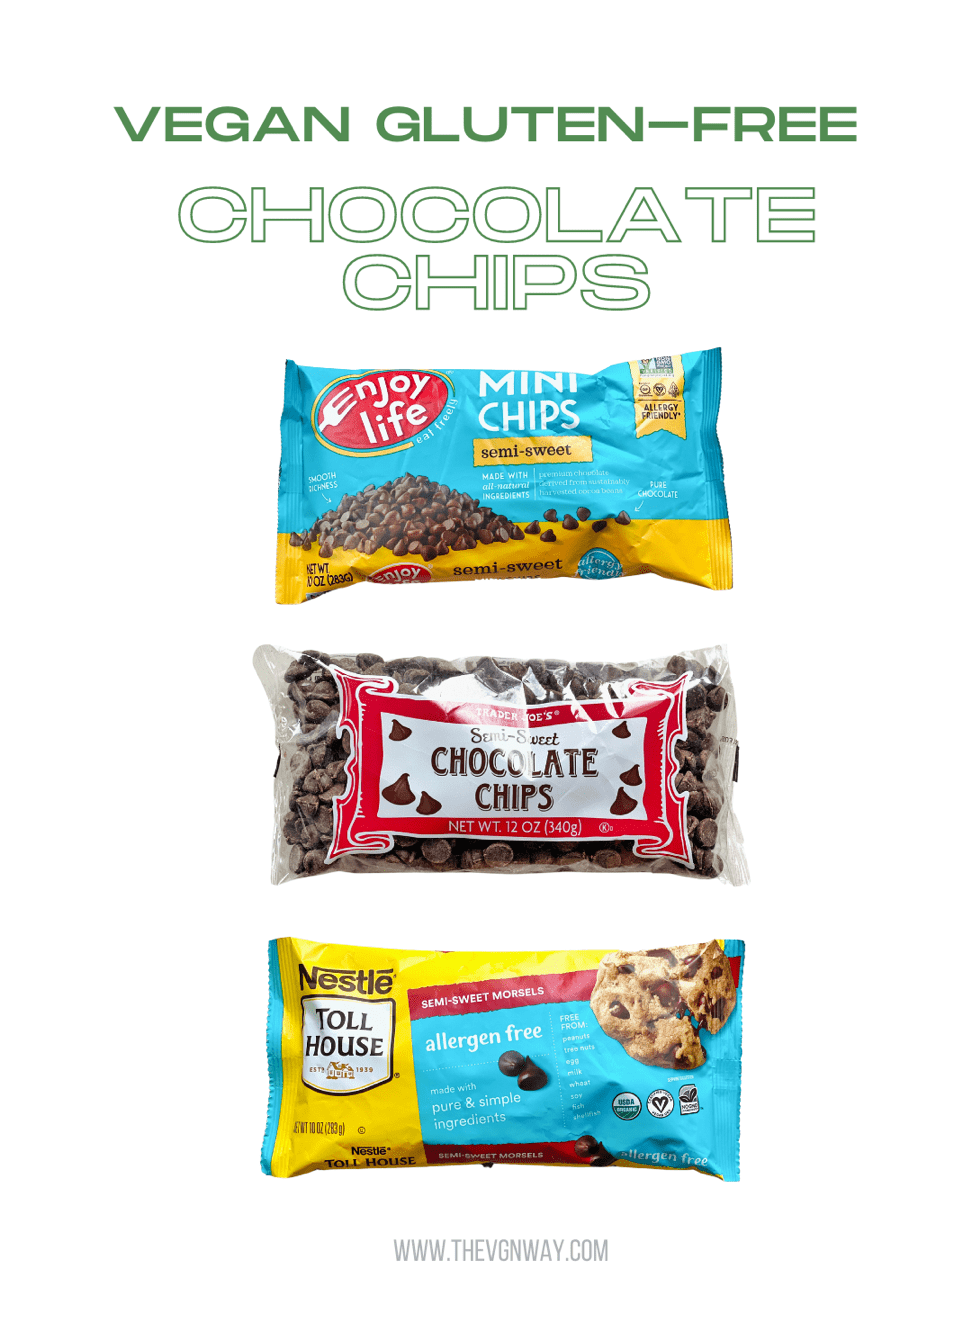 Three bags of different vegan gluten-free chocolate chips currently available to purchase in store